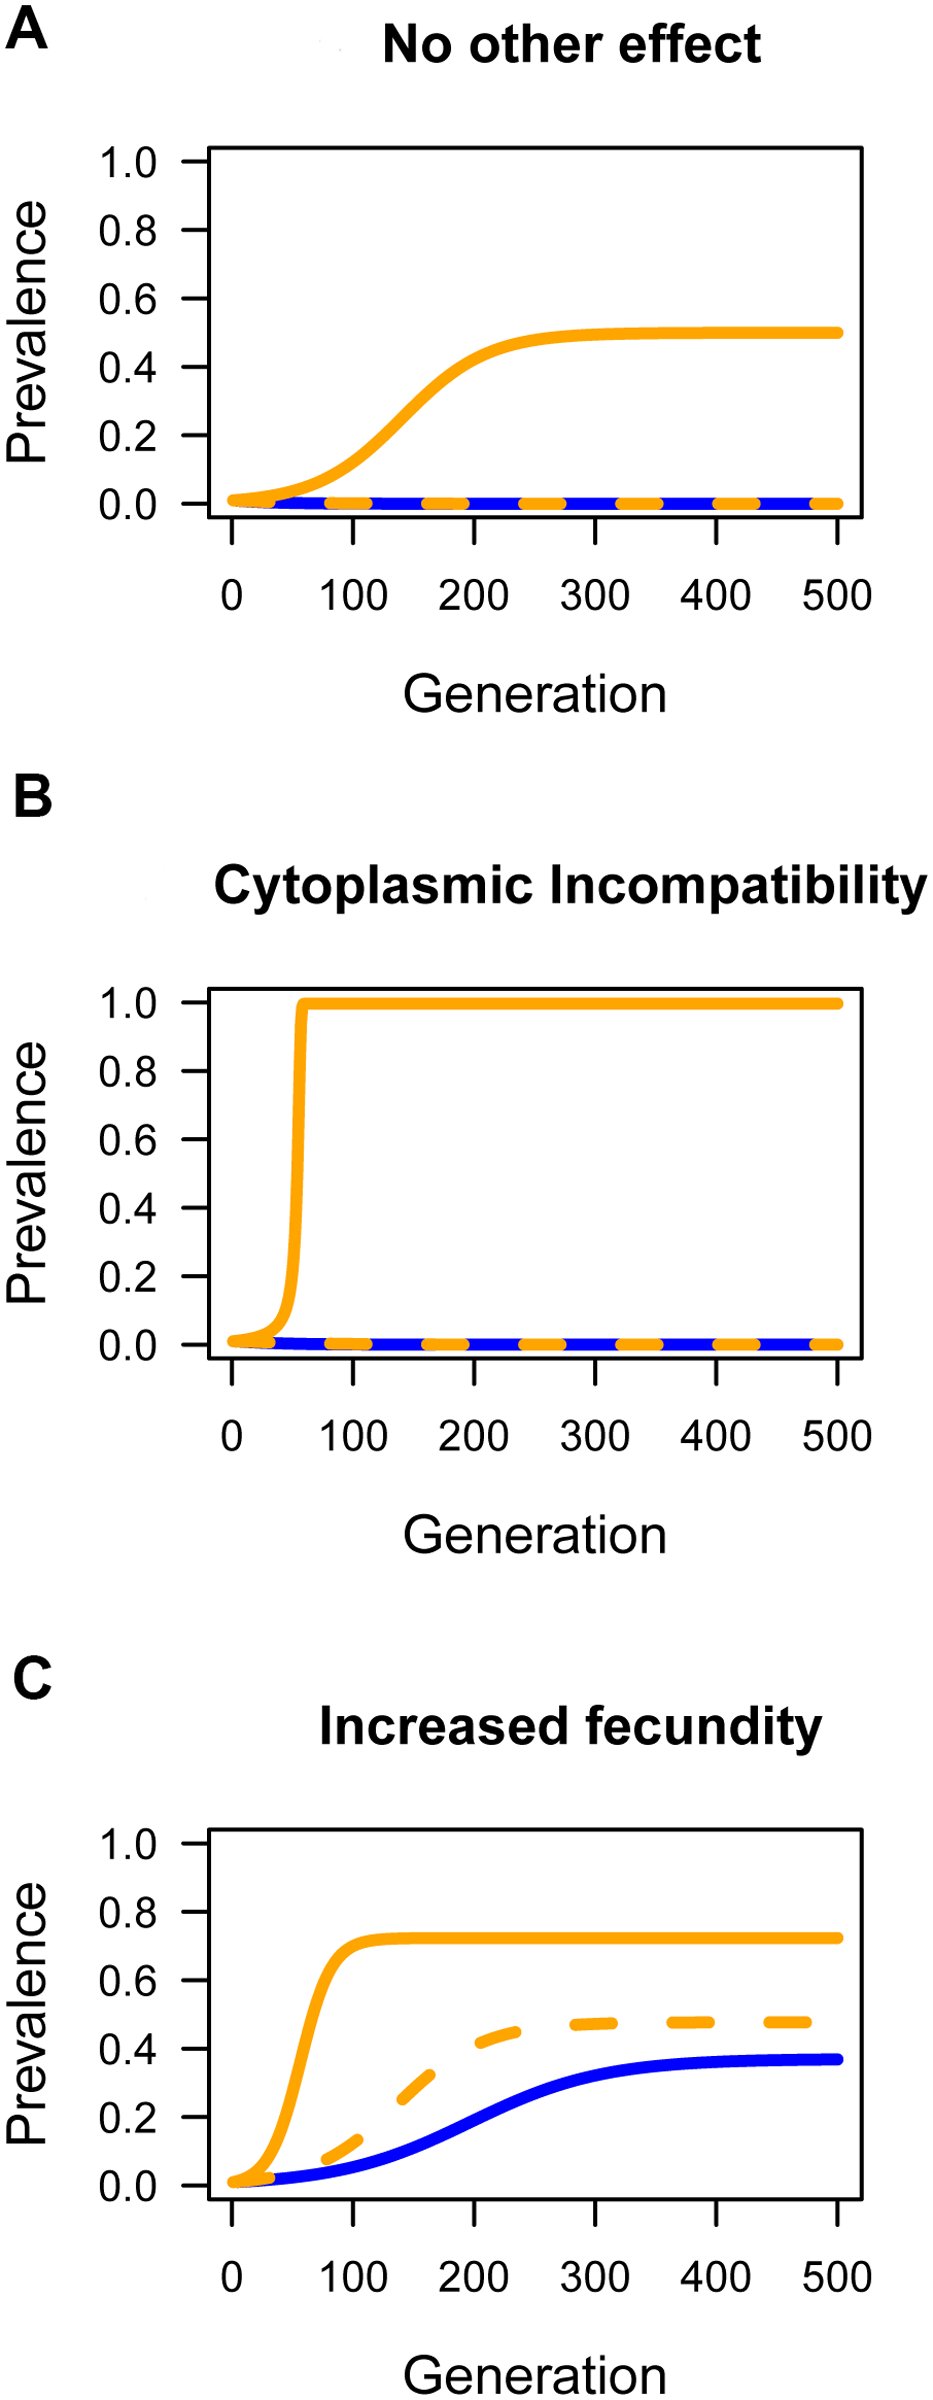 The effect of horizontal transmission on the spread of <i>Wolbachia</i> through populations.